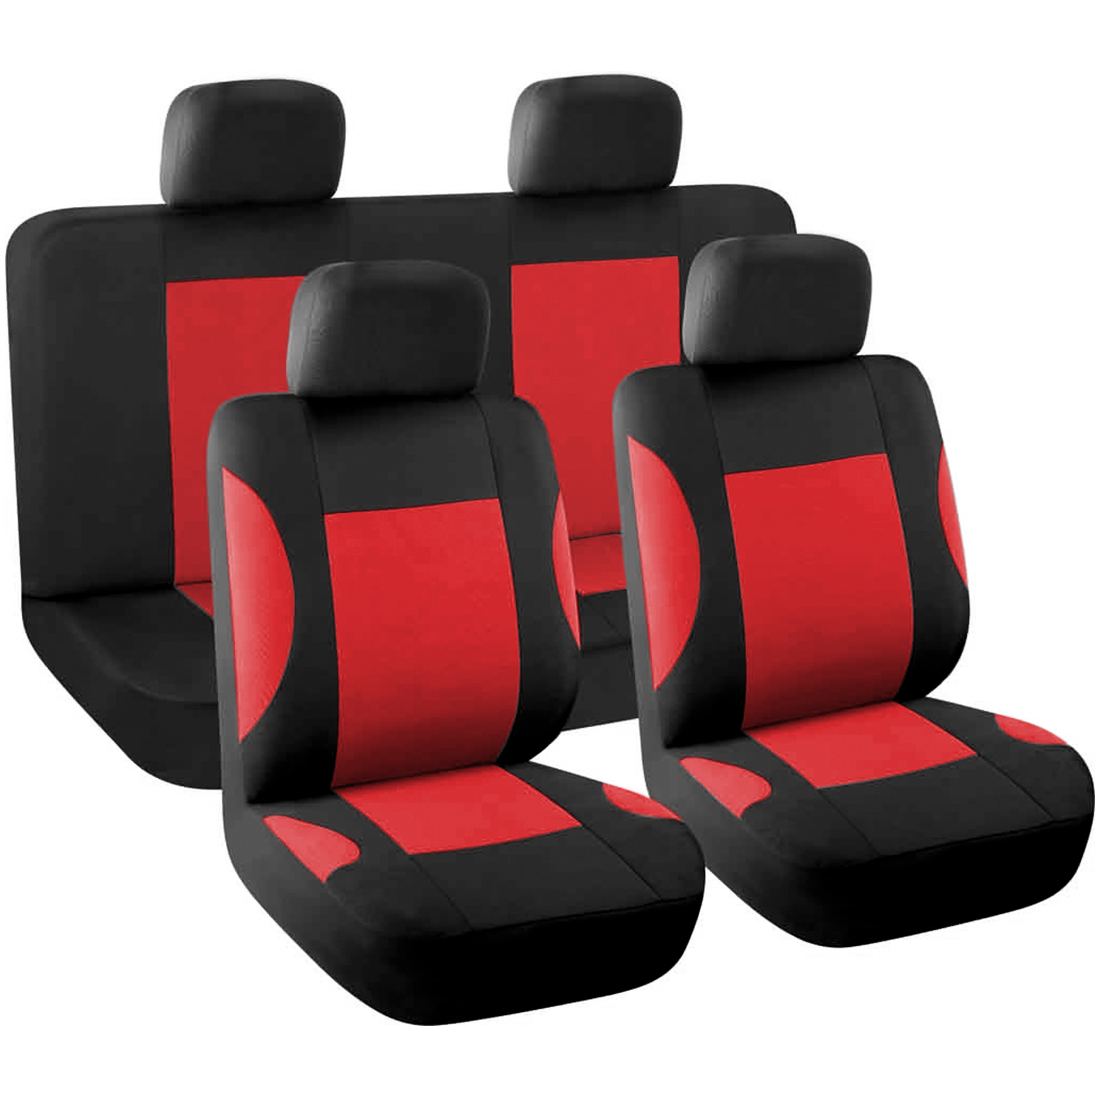 8pcs Styling Auto Interior Accessories Car Seat Cover full set Red